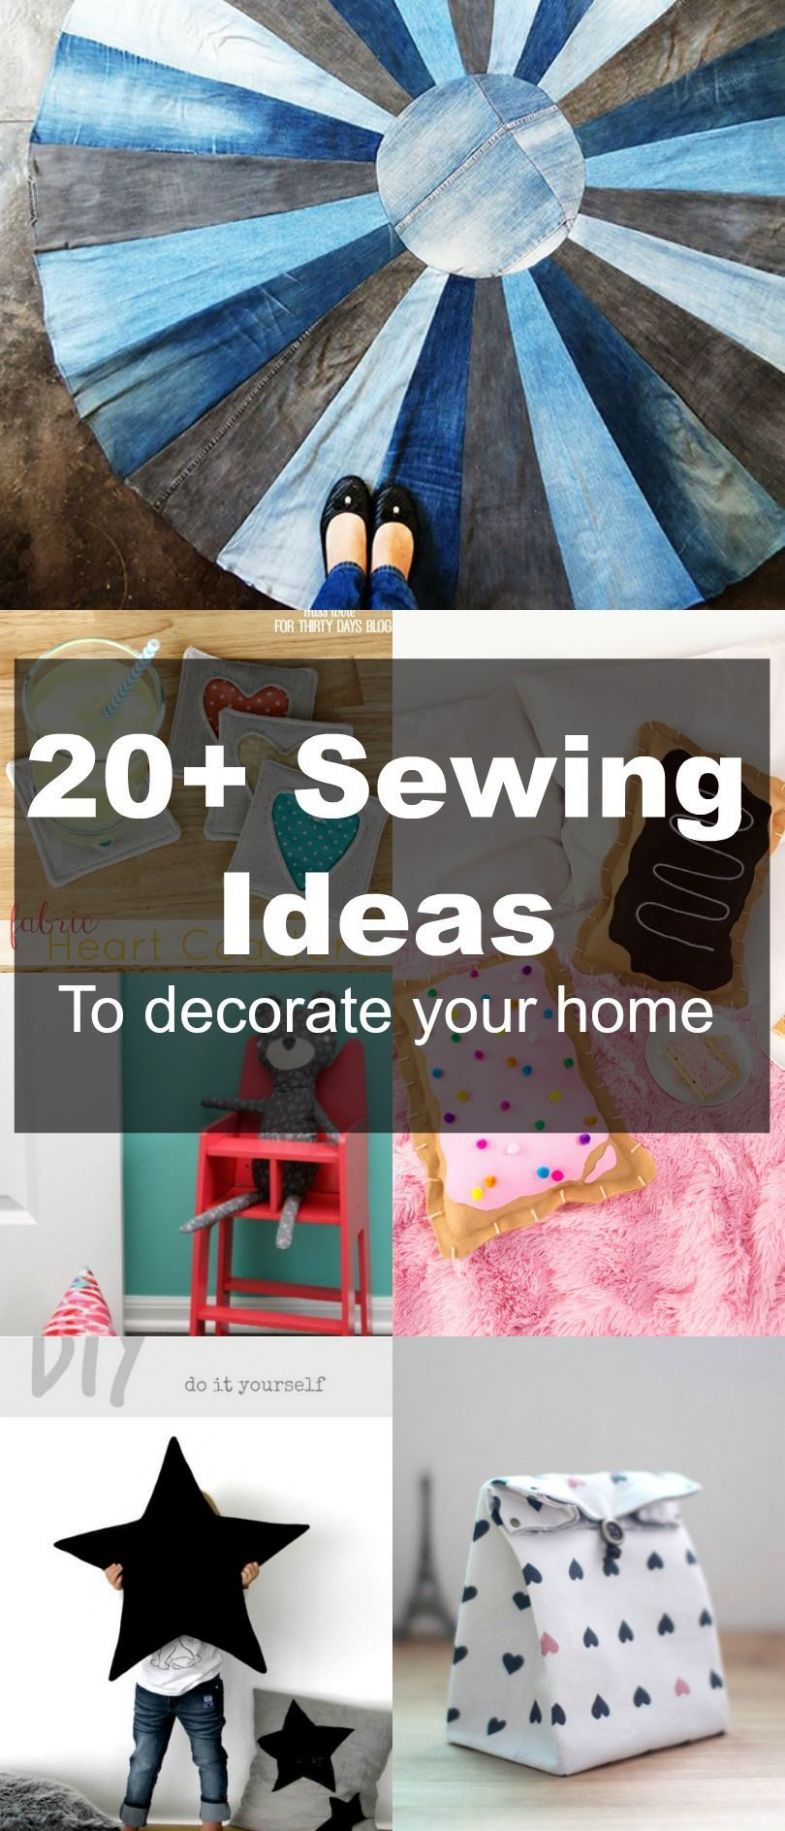 Pin on DIY Home Decor Sewing - diy home decor sewing projects